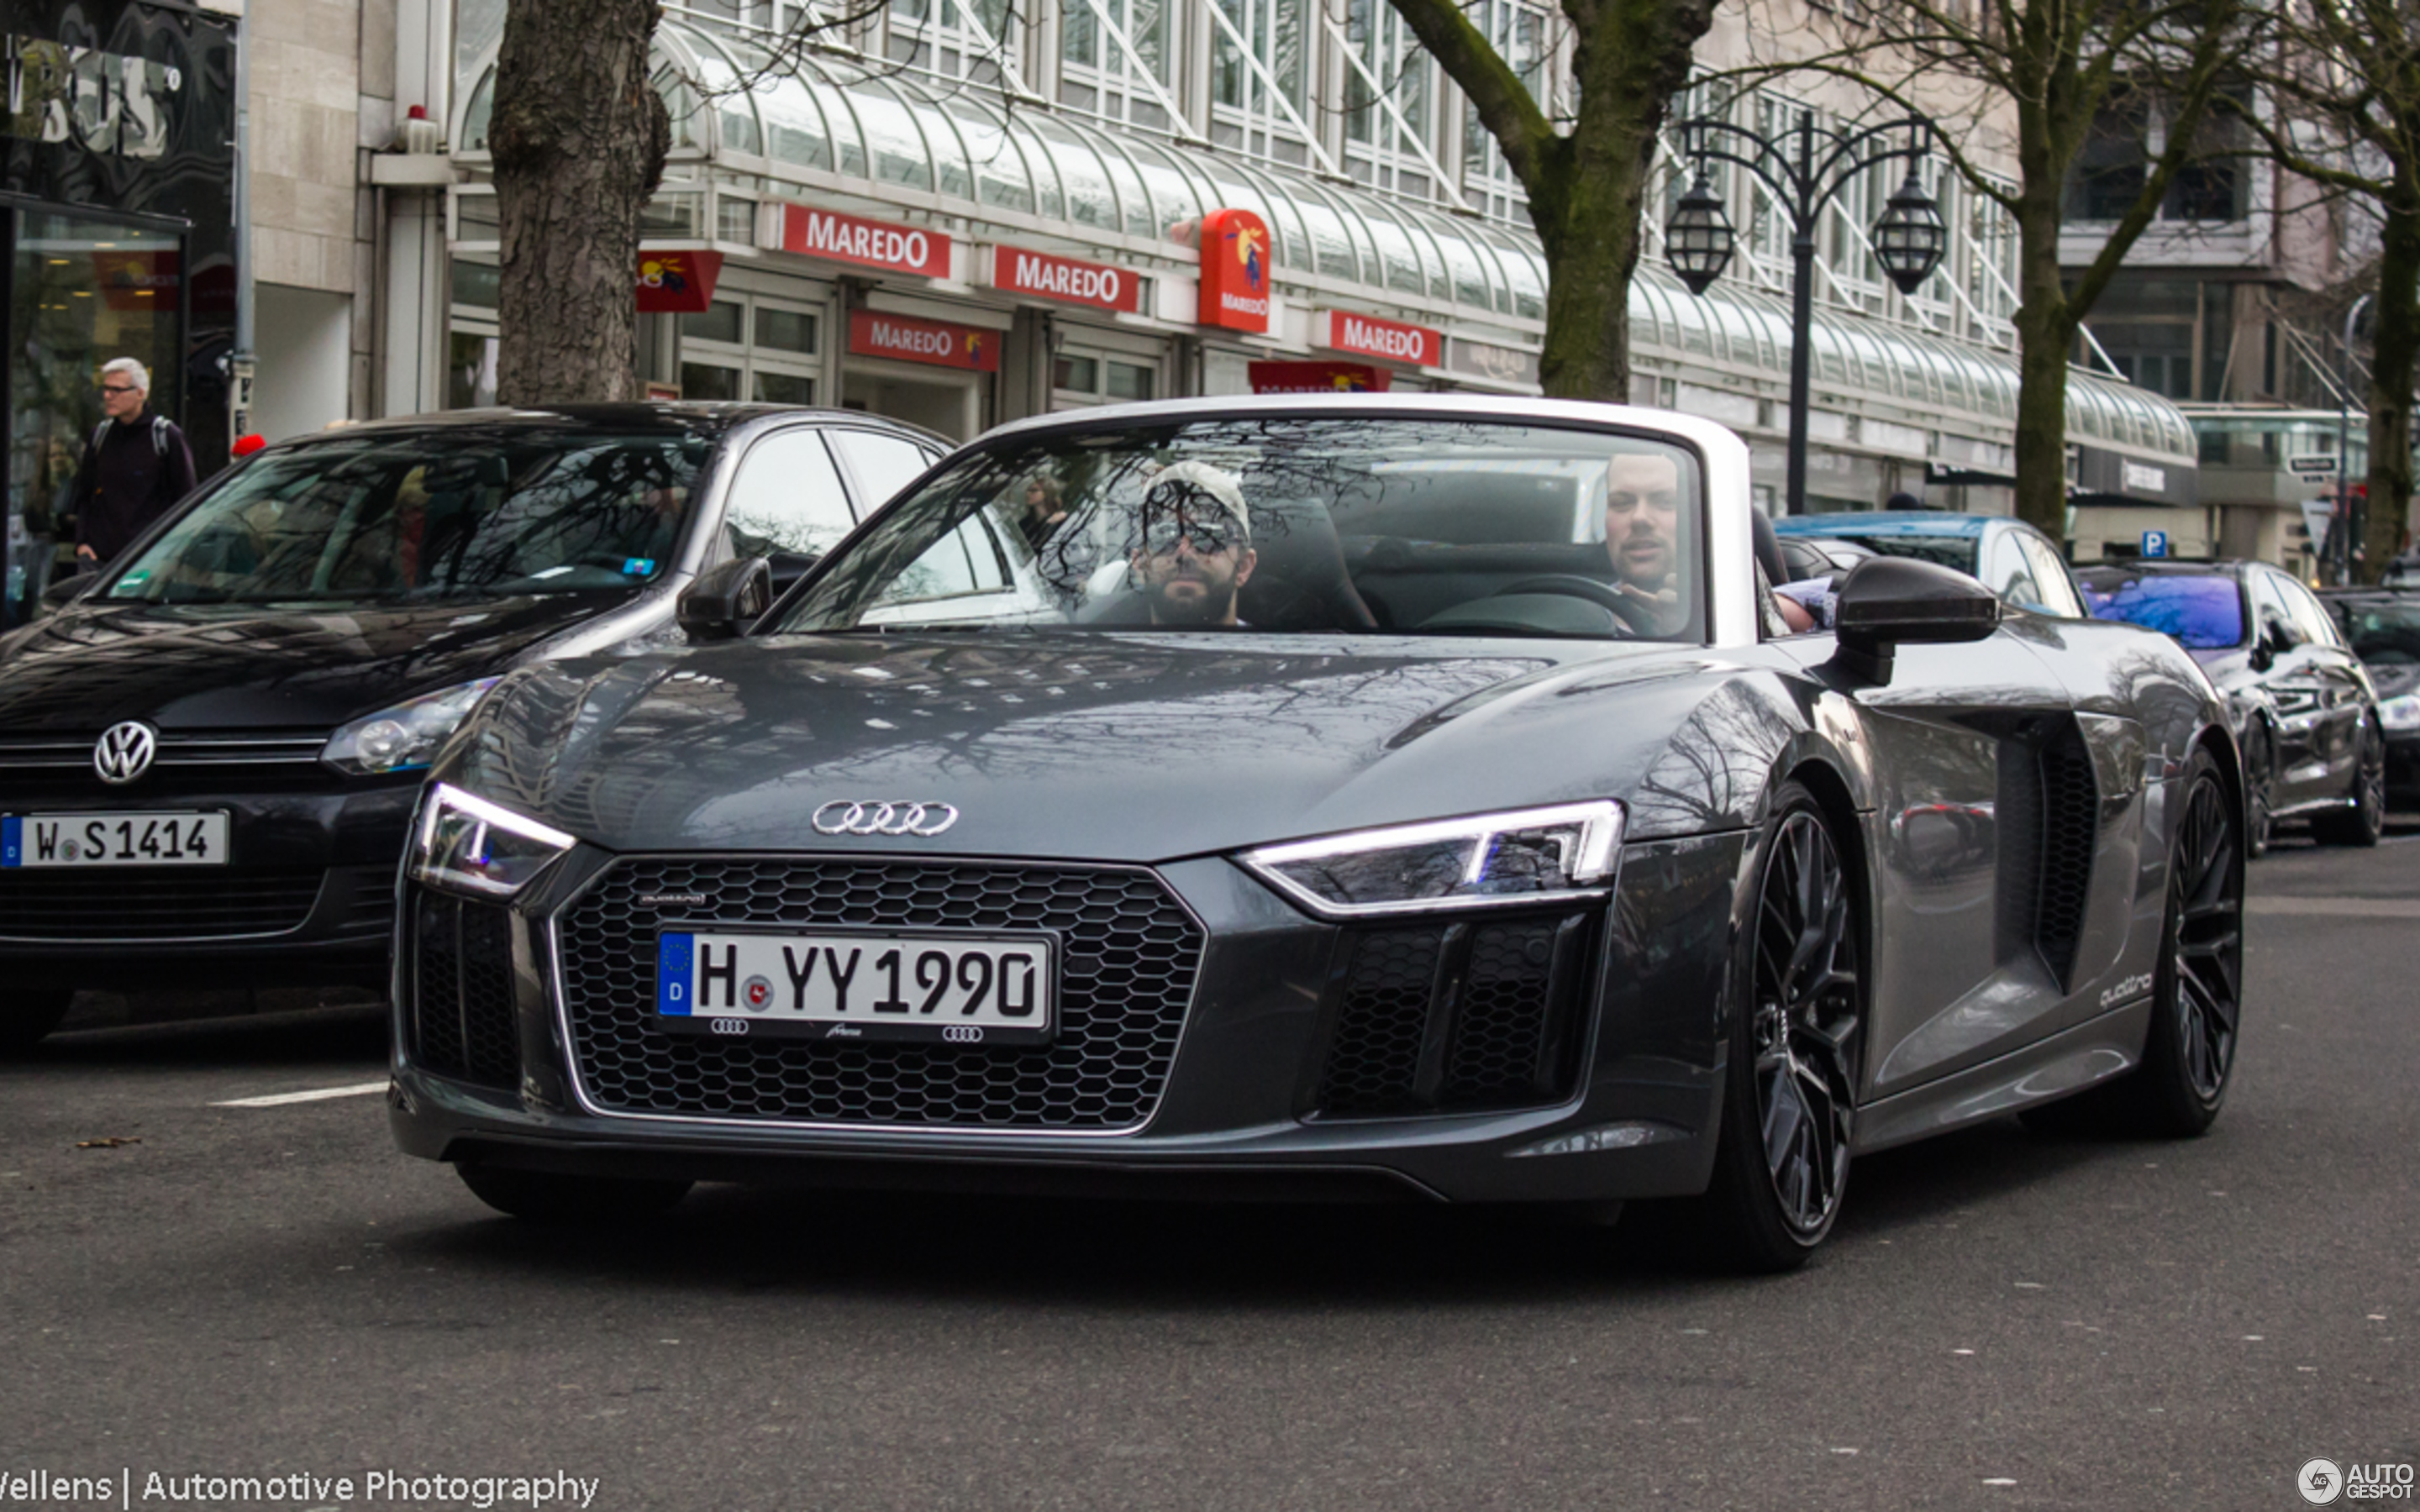 Audi R V Spyder March Autogespot - Audi r8 v10 spyder